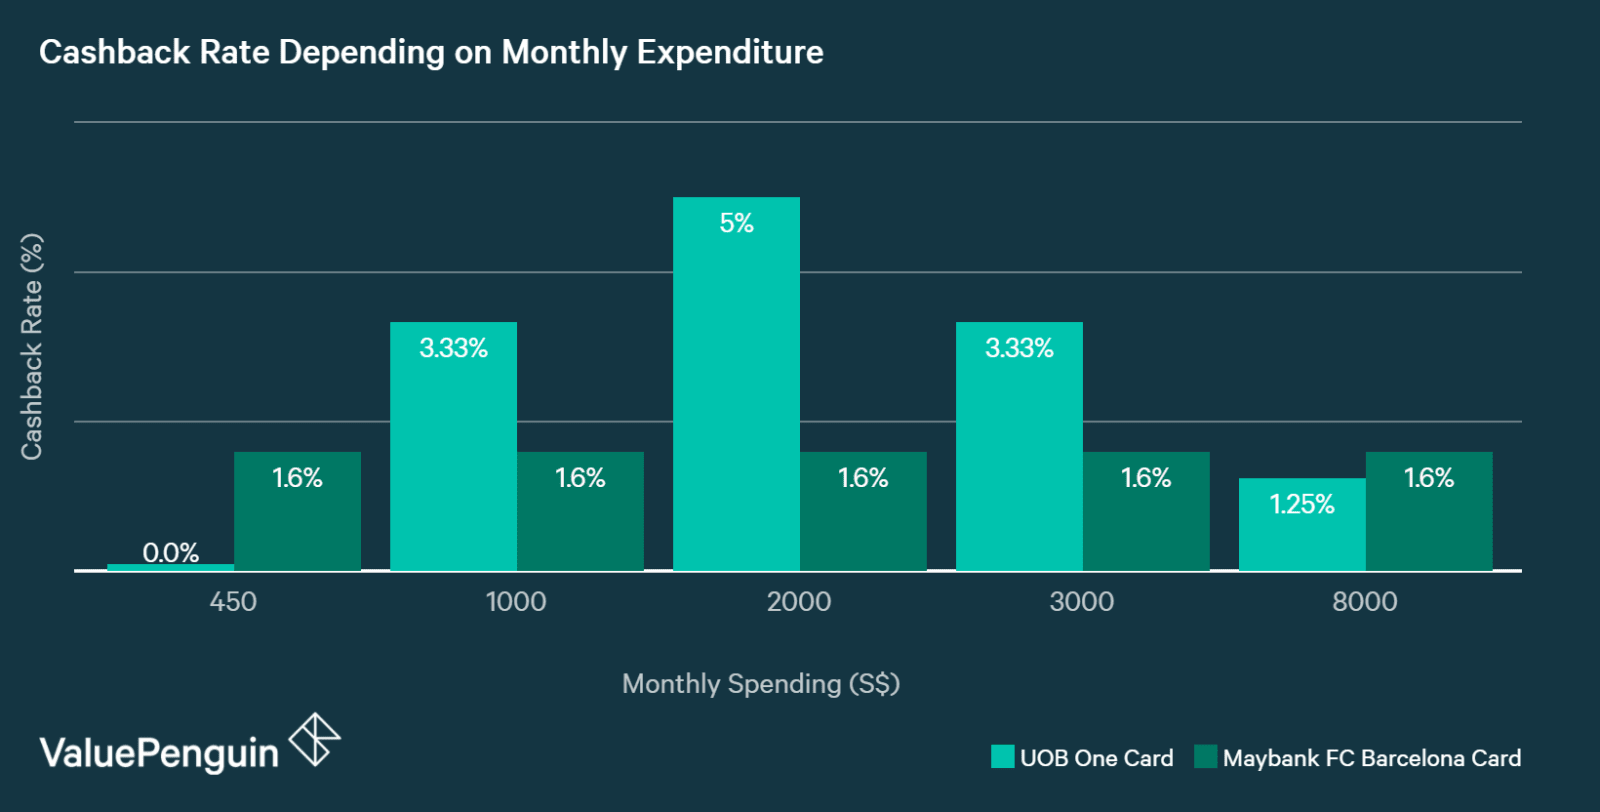 chart showing how maybank fc barcelona visa signature card and UOB one card compare in terms of cash back rate for different levels of monthly spending